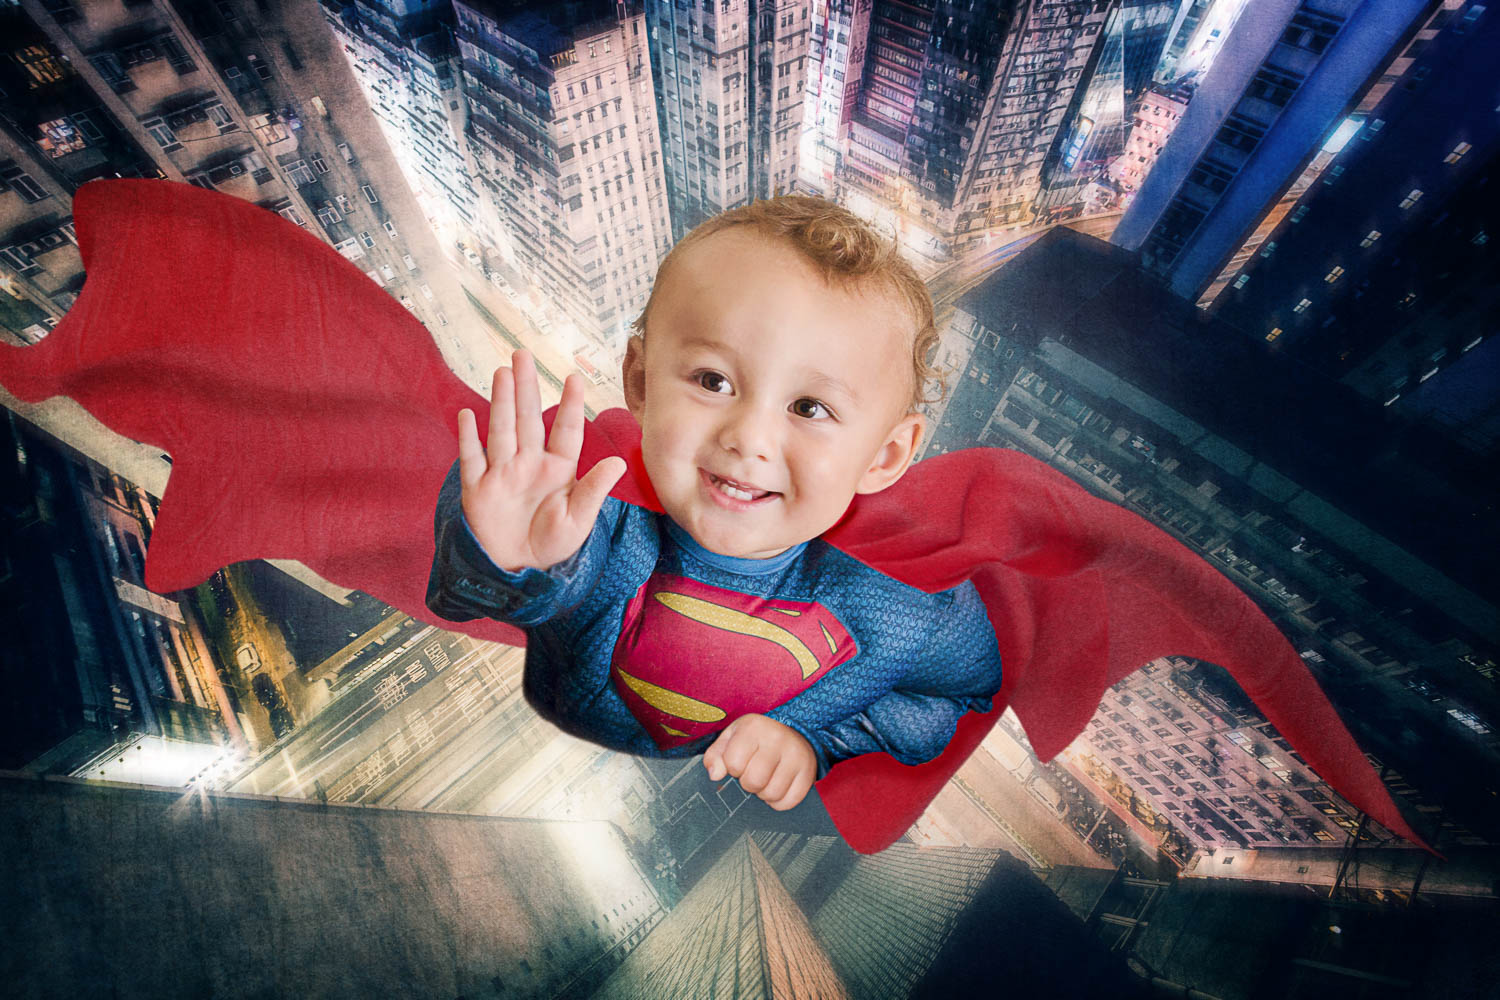 Little boy superman flying through city storybook composite